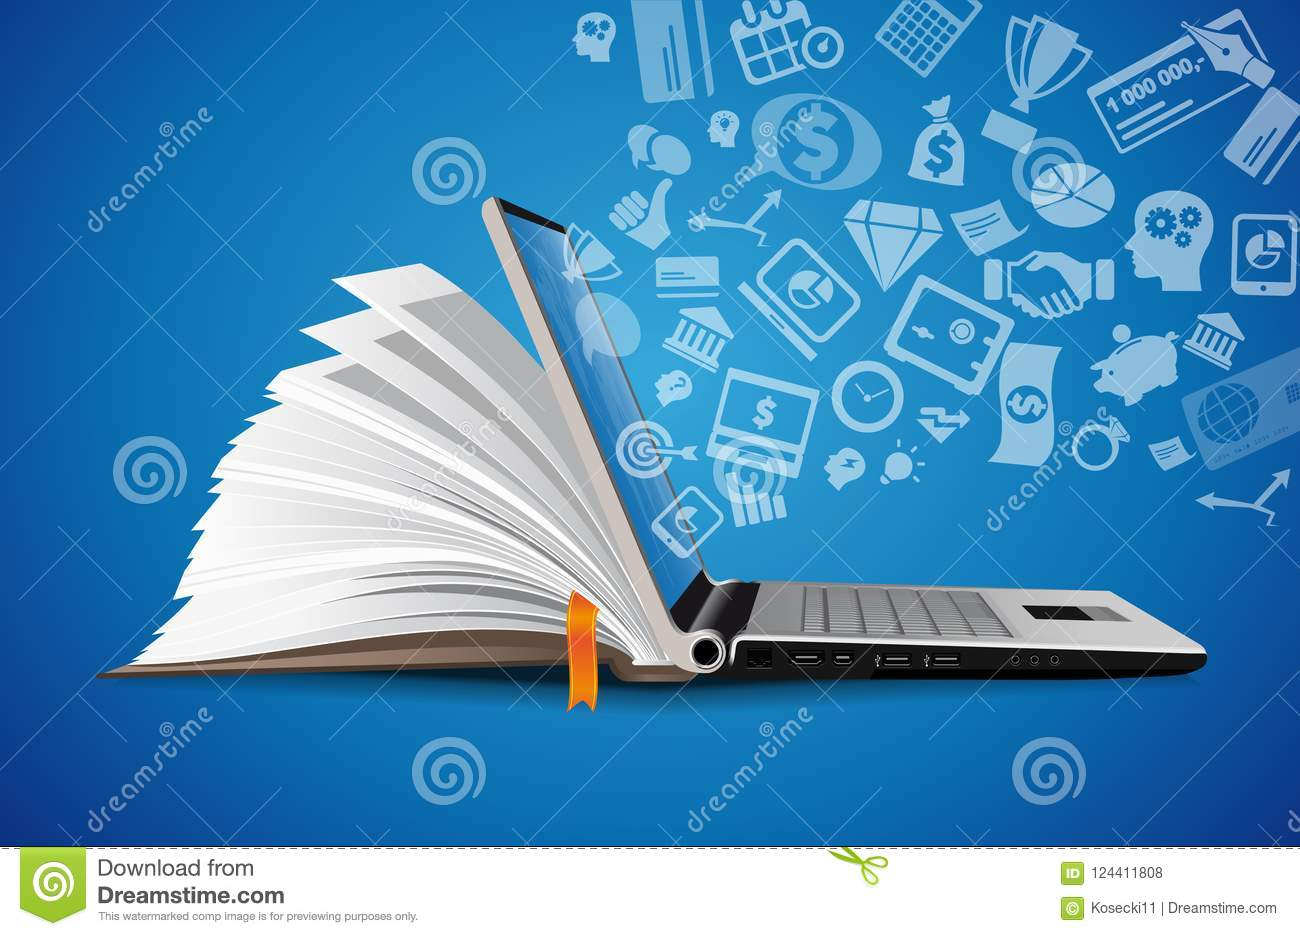 Computer as book knowledge base concept - laptop as elearning